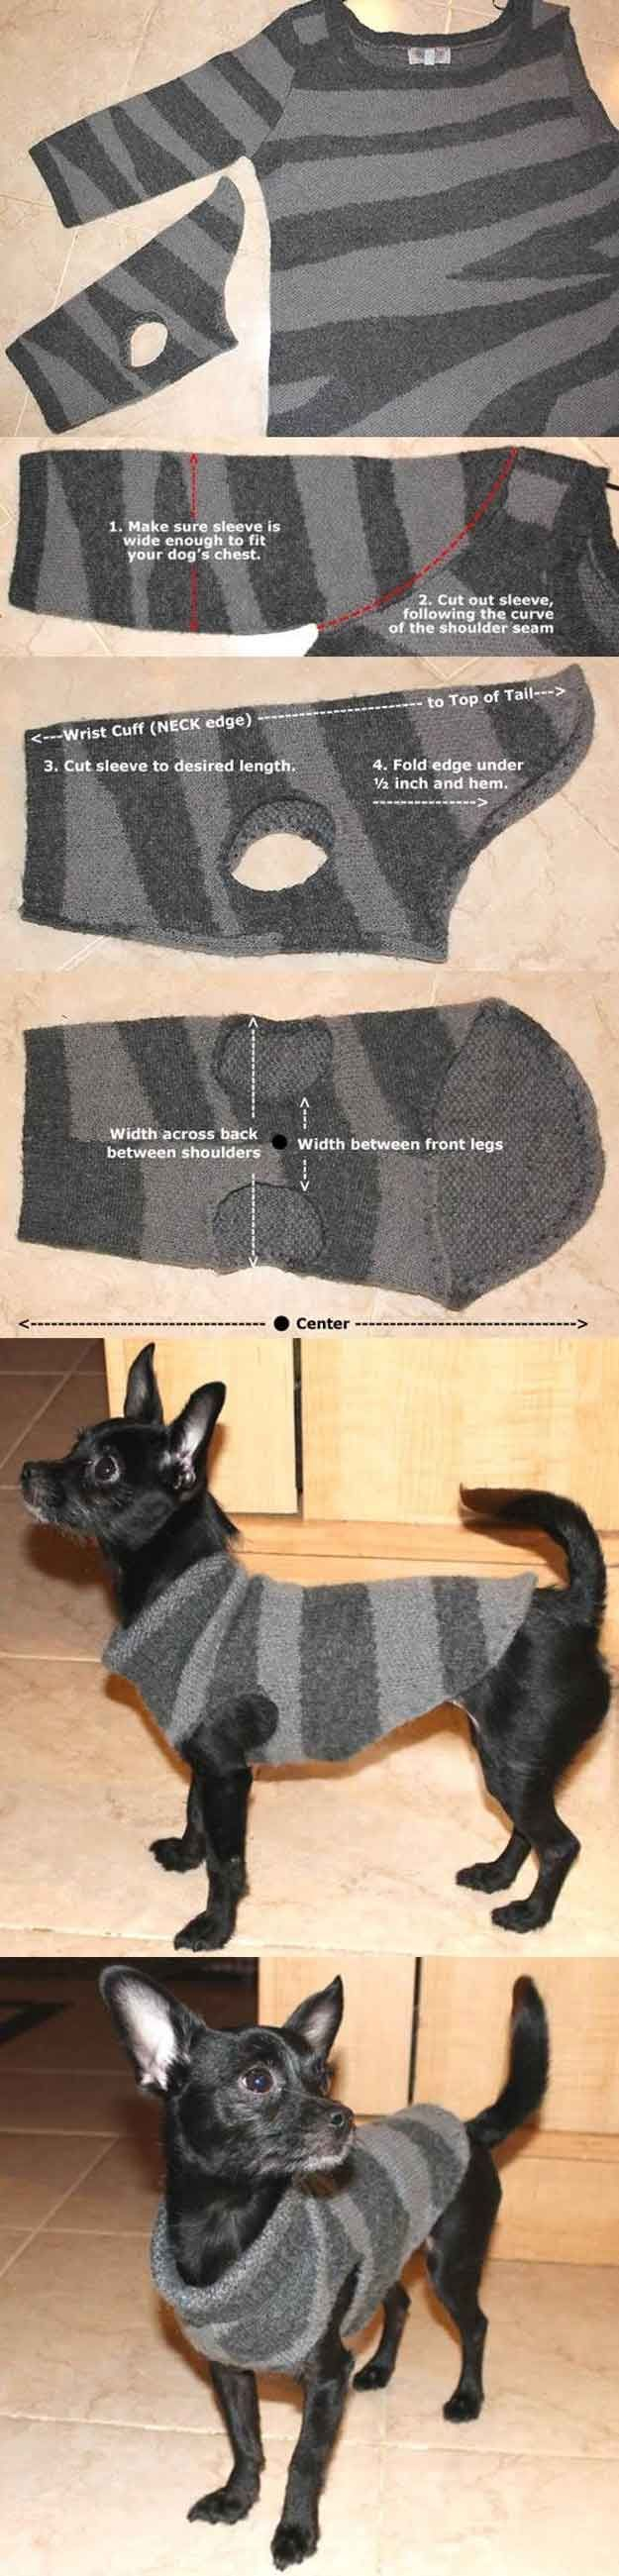 Upcycled Dog Sweater - 12 DIY Dog Clothes and Coats | How To Make Cute Outfits For Your Furry Pet by DIY Ready at http://diyready.com/diy-dog-clothes-and-coats/